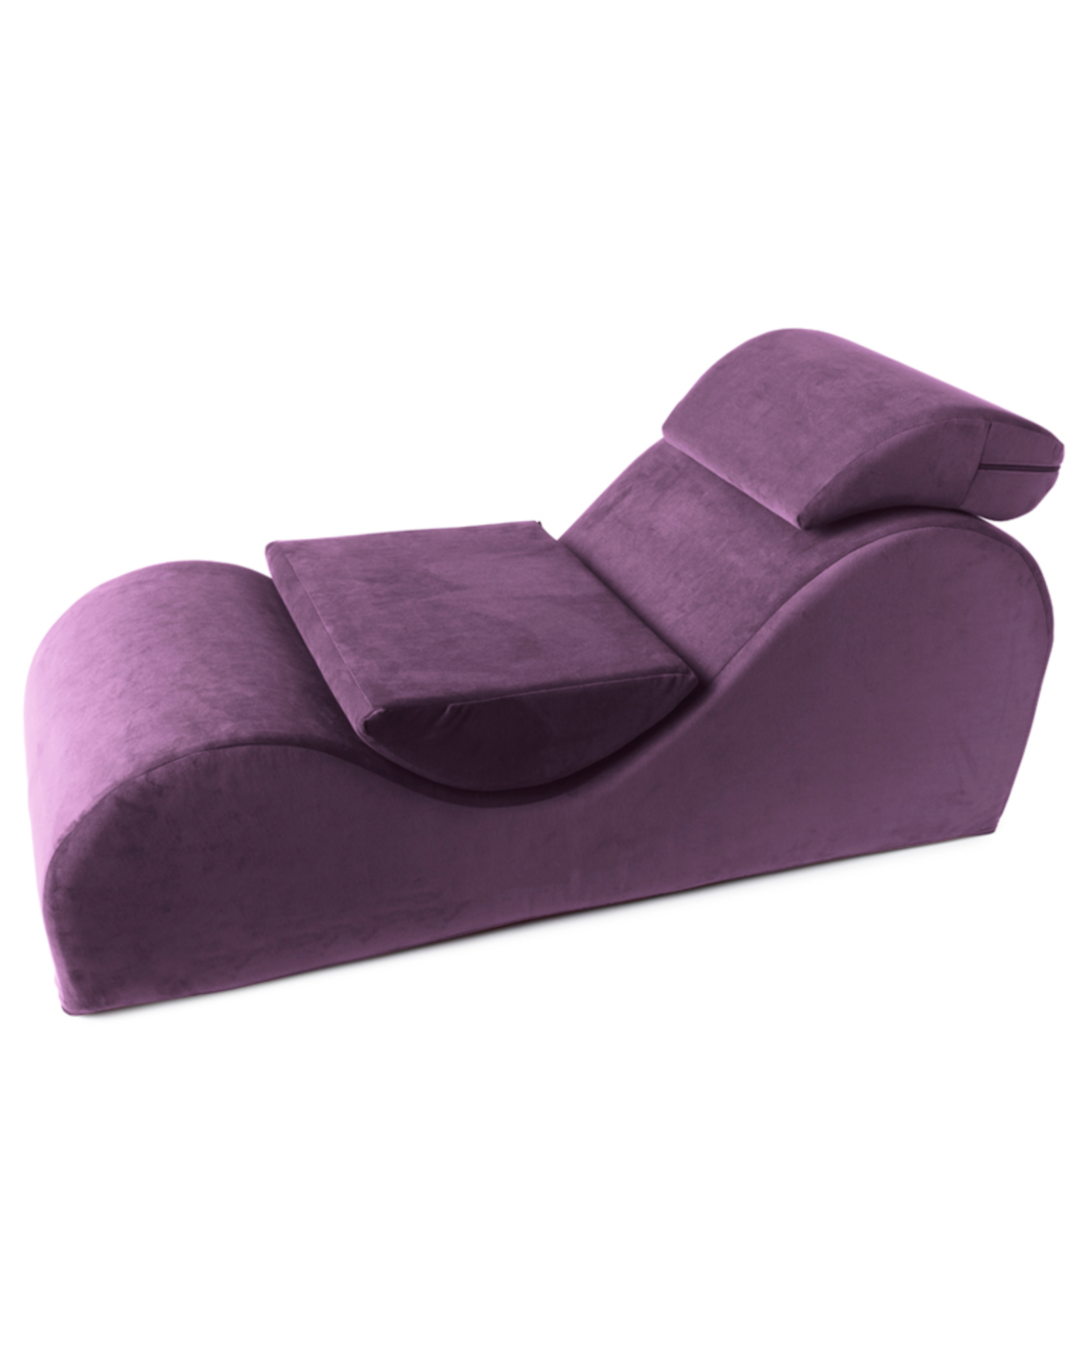 Liberator Esse Luxury Tantric Sex Lounger - Assorted Colors